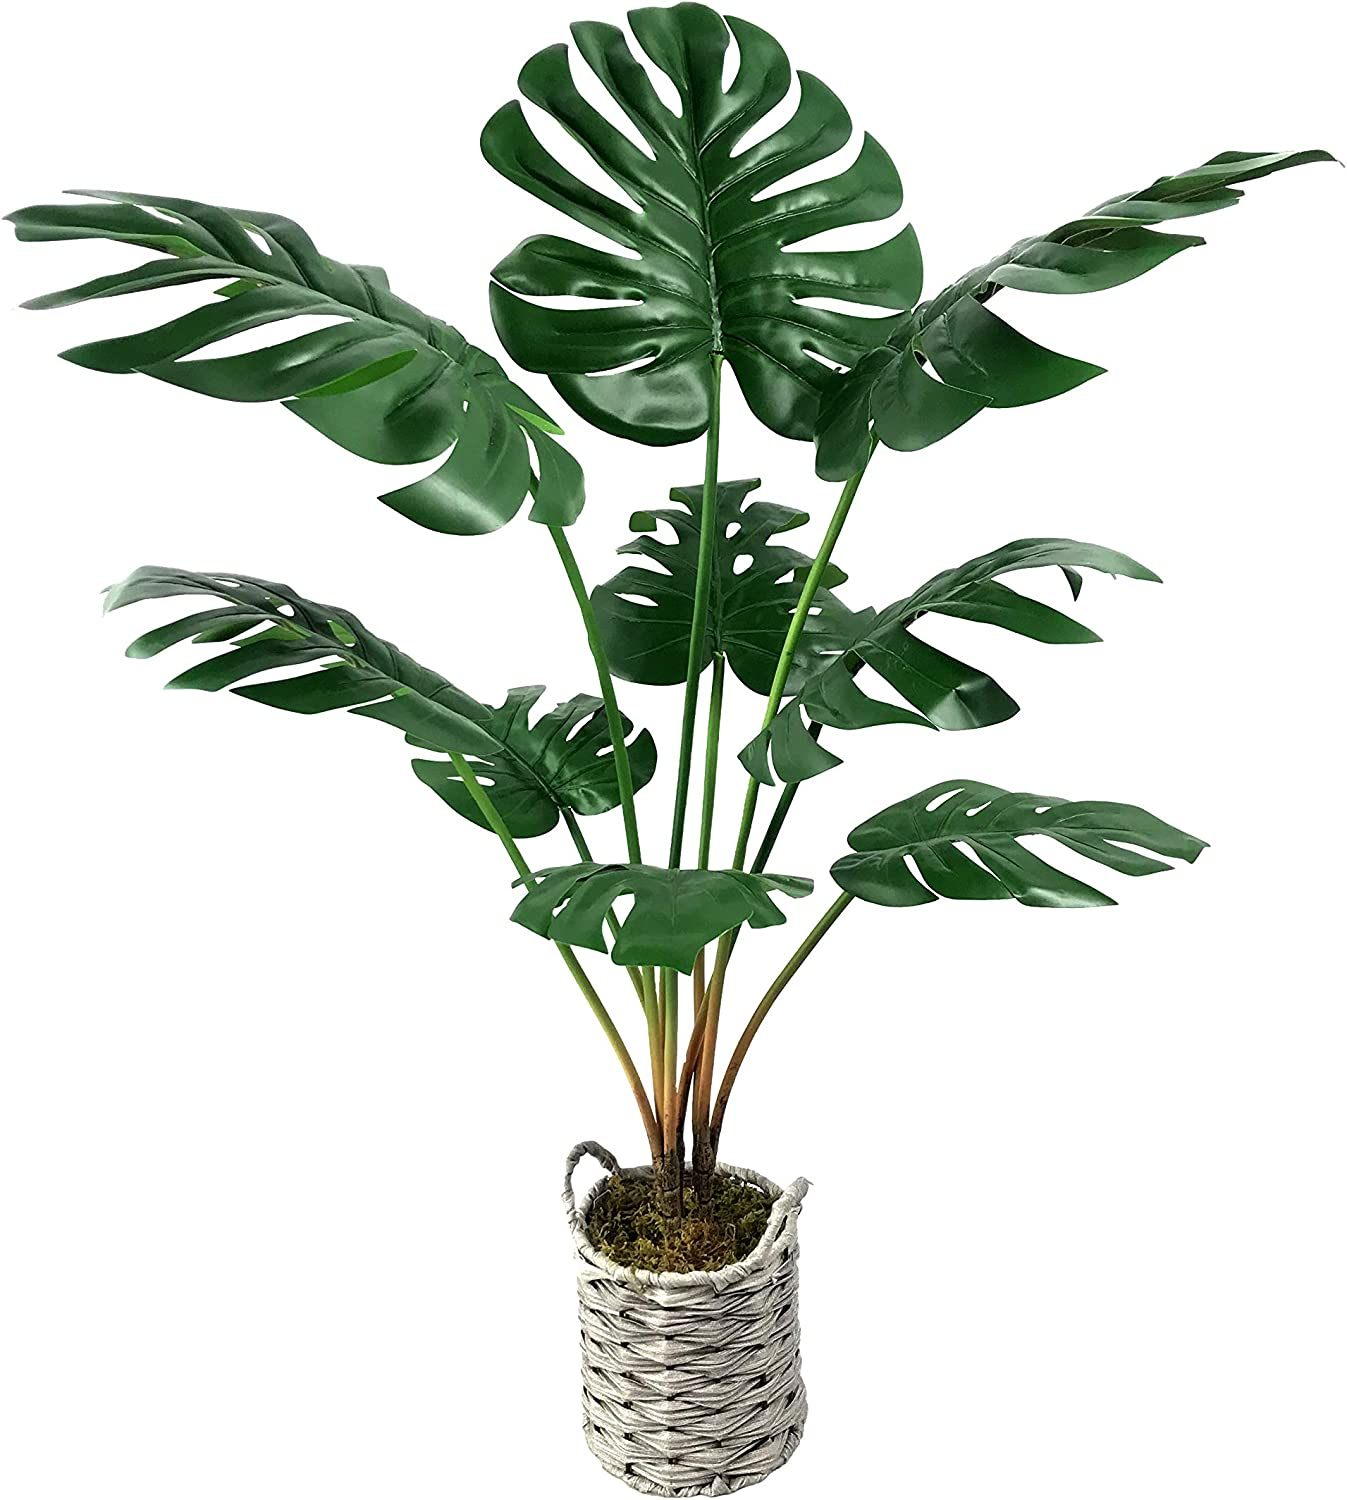 Fake Monstera Plants Artificial Tree in Grey Woven Basket 34 inches High Gift -1 Pack